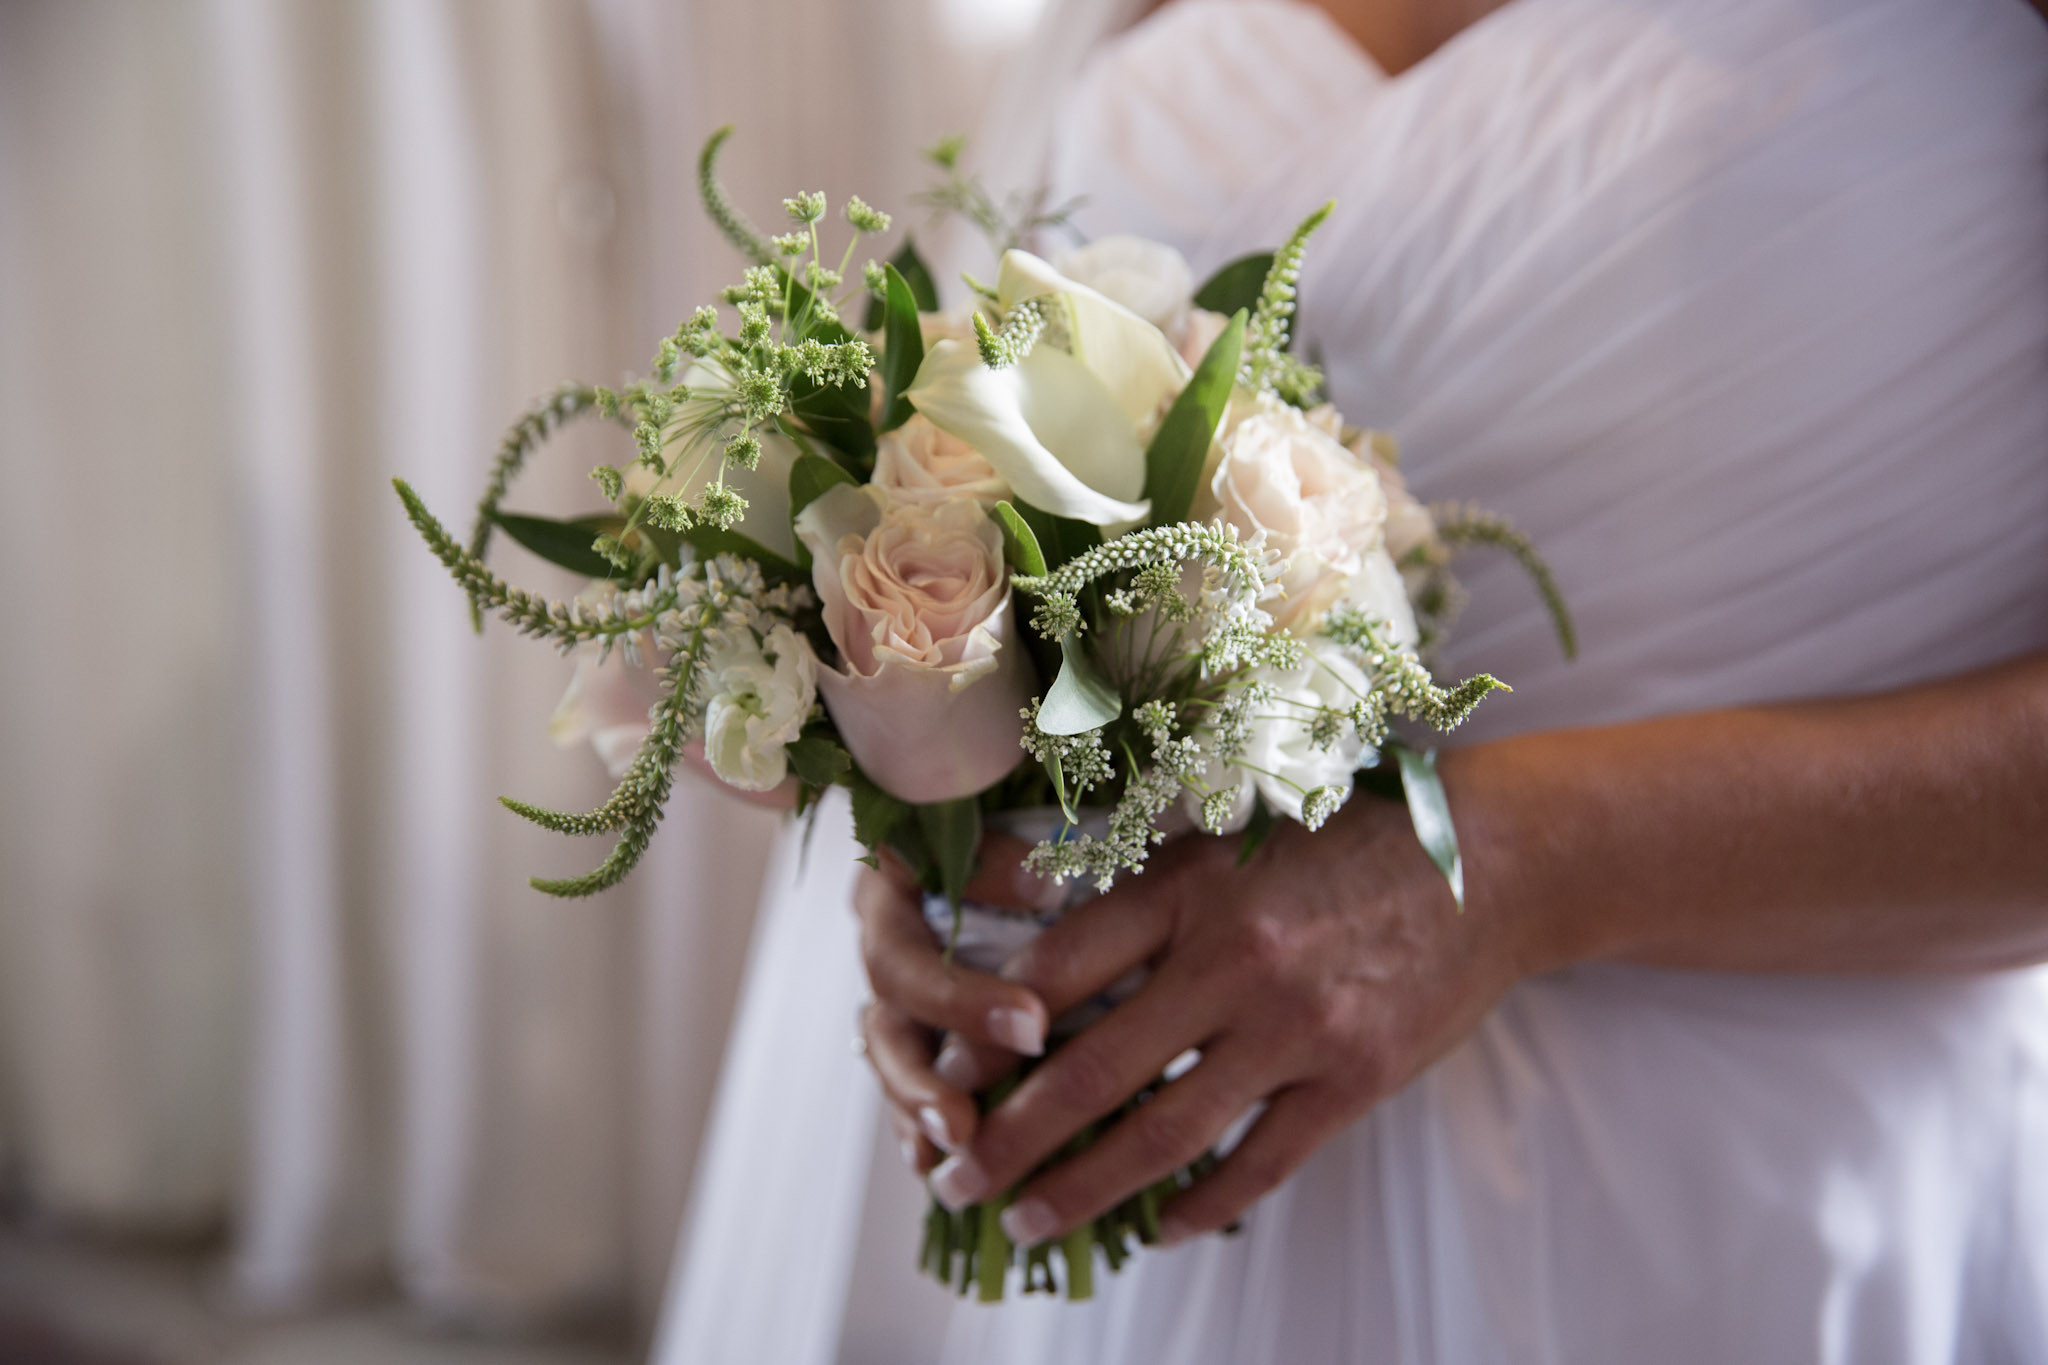 Kansas_City_Small_Wedding_Venue_Elope_Intimate_Ceremony_Budget_Affordable_Summer_Flowers_KM4A9303LZ.JPG